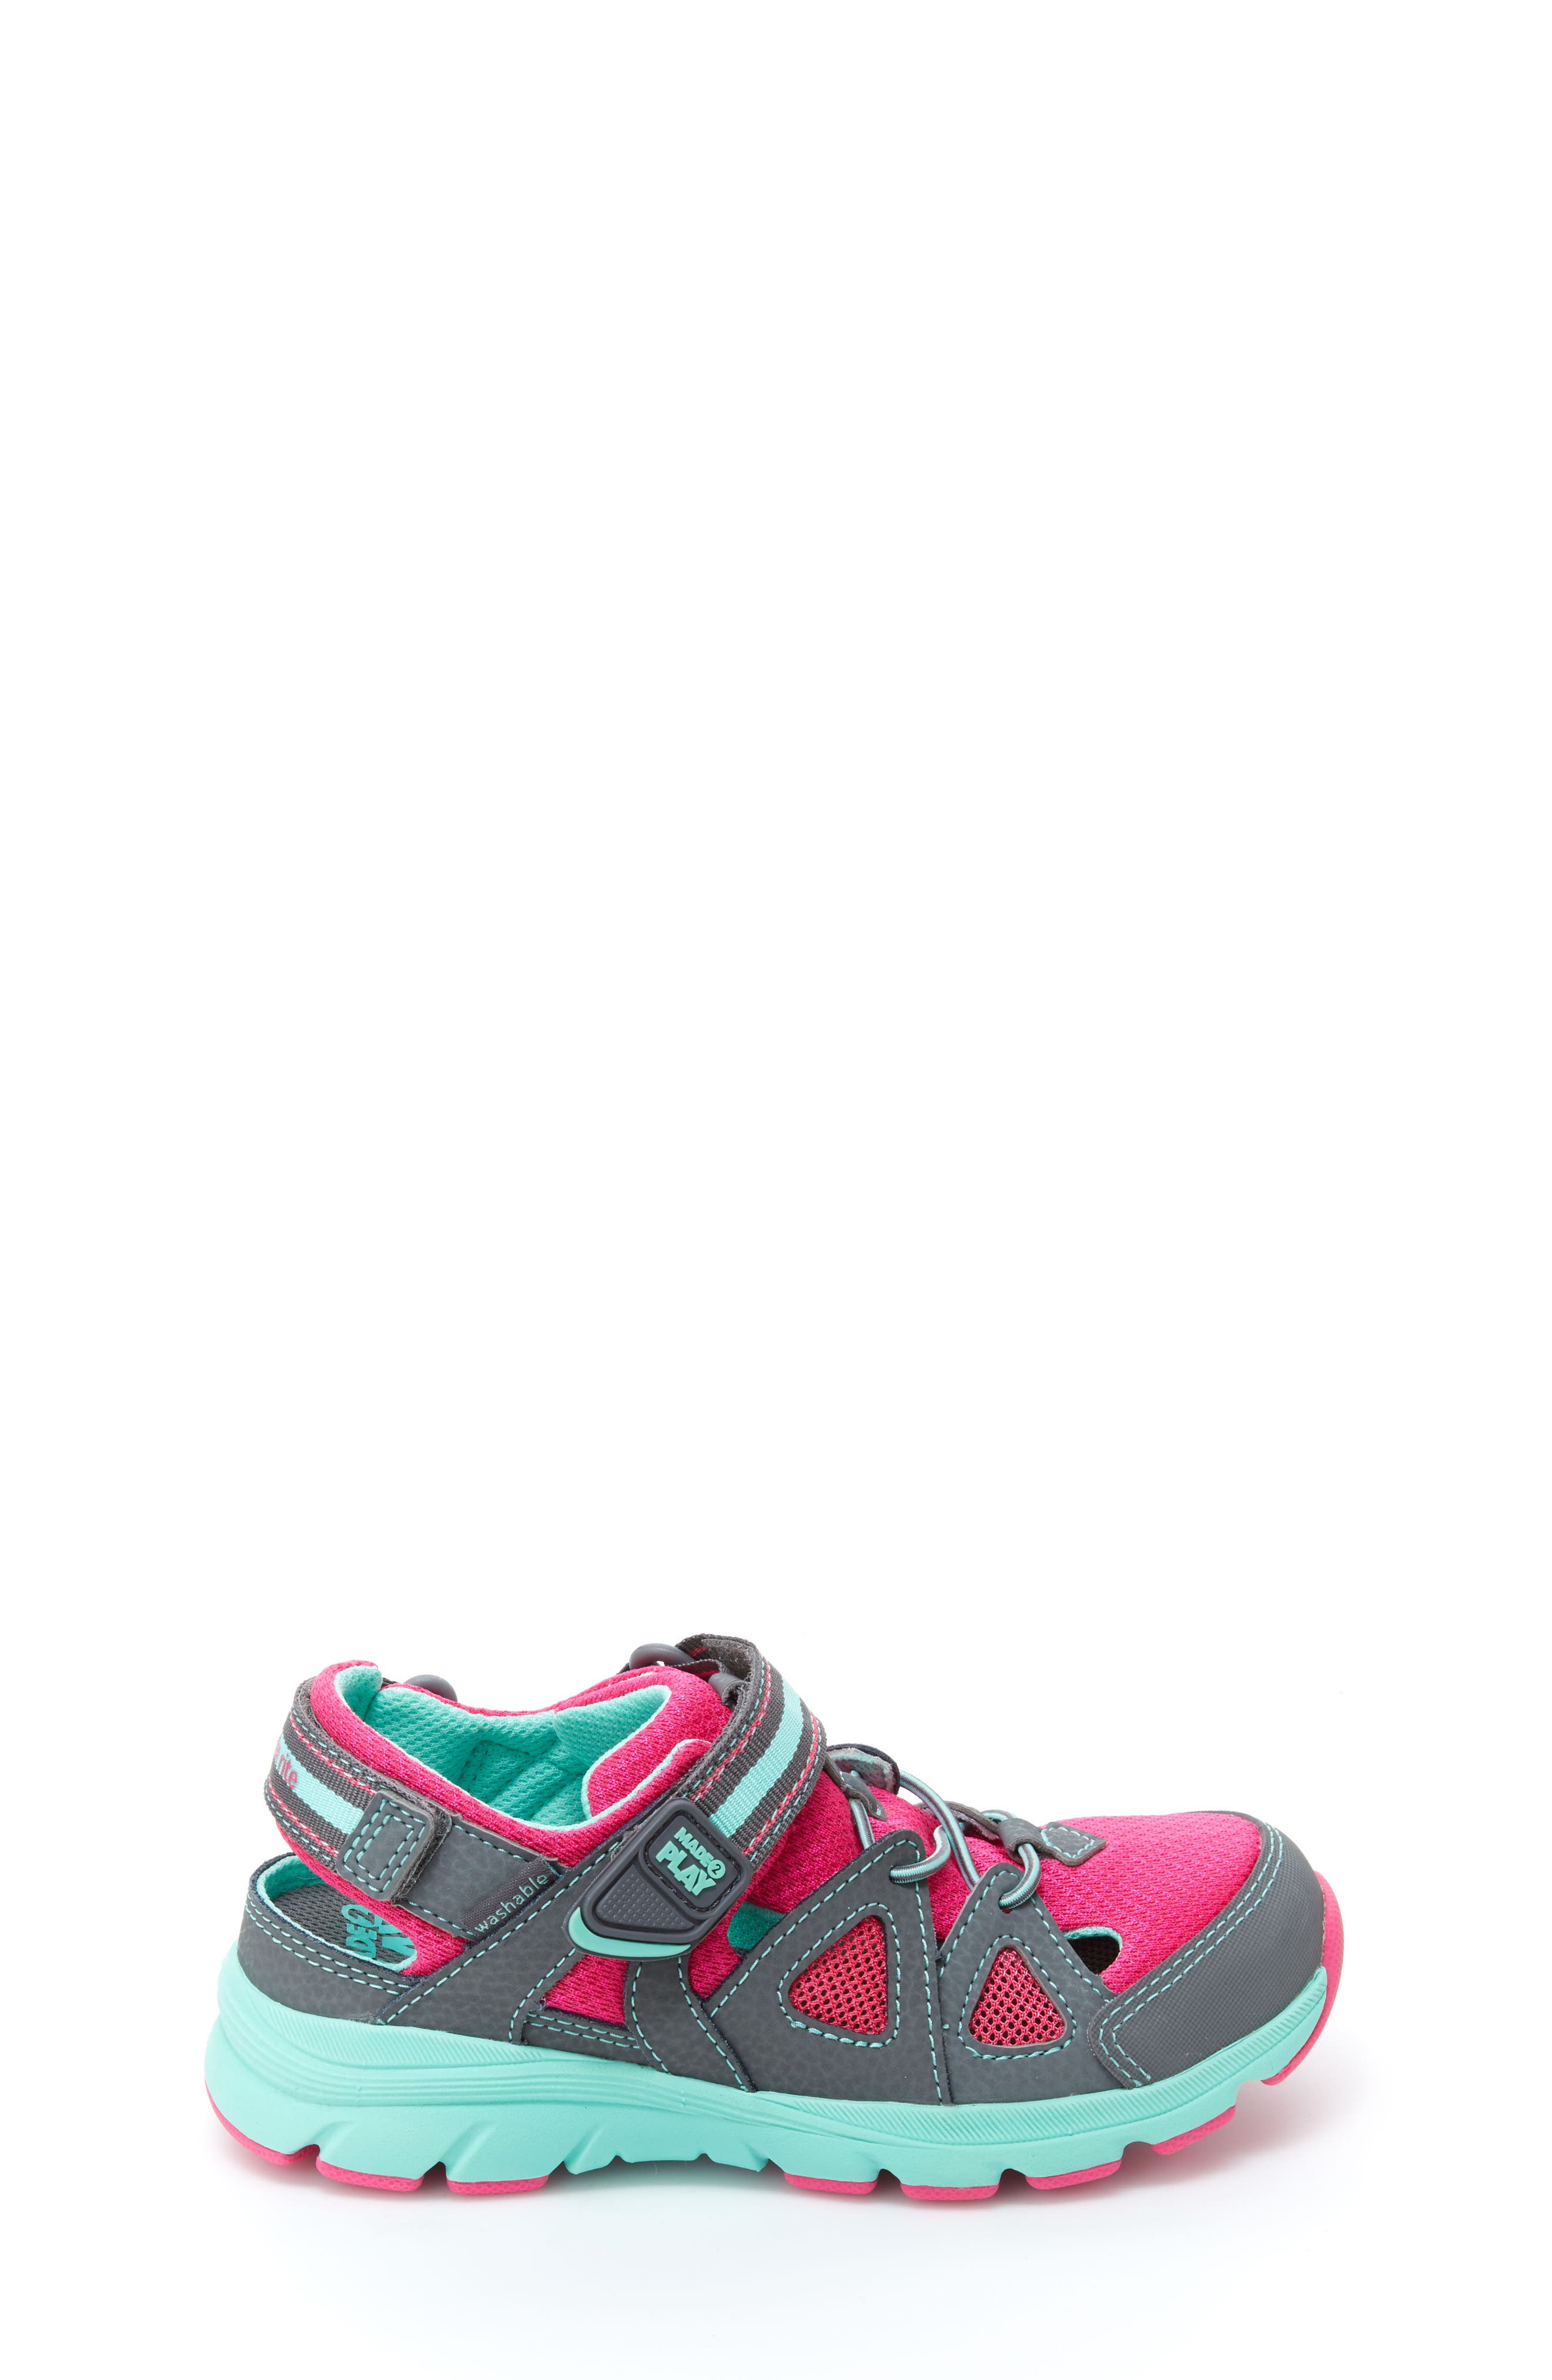 STRIDE RITE,                             Made2Play<sup>®</sup> Ryder Washable Sneaker,                             Alternate thumbnail 3, color,                             020